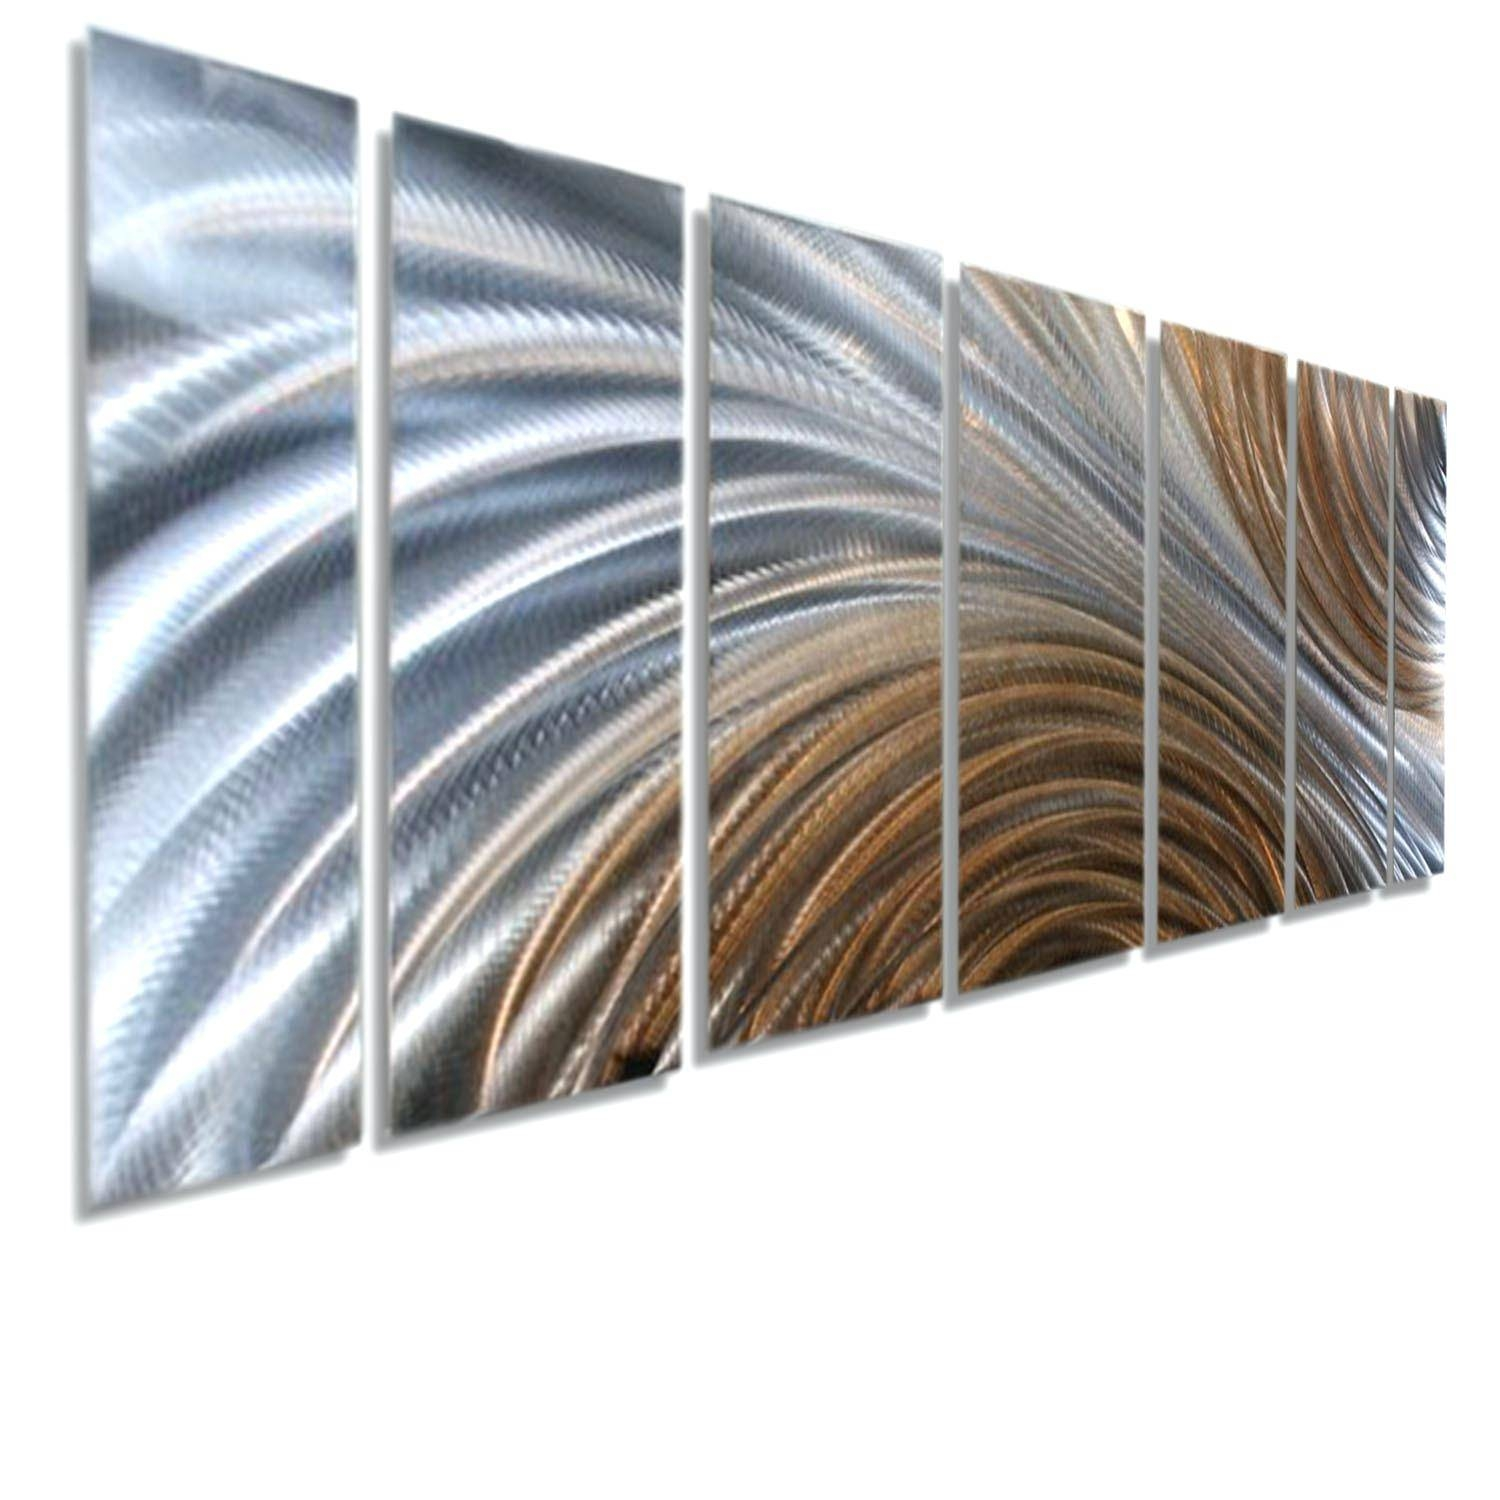 Wall Ideas : Mgctlbxnmzp Mgctlbxv5114 Mgctlbxlc Metal Wall Art Inside Most Up To Date Ash Carl Metal Art (View 24 of 30)